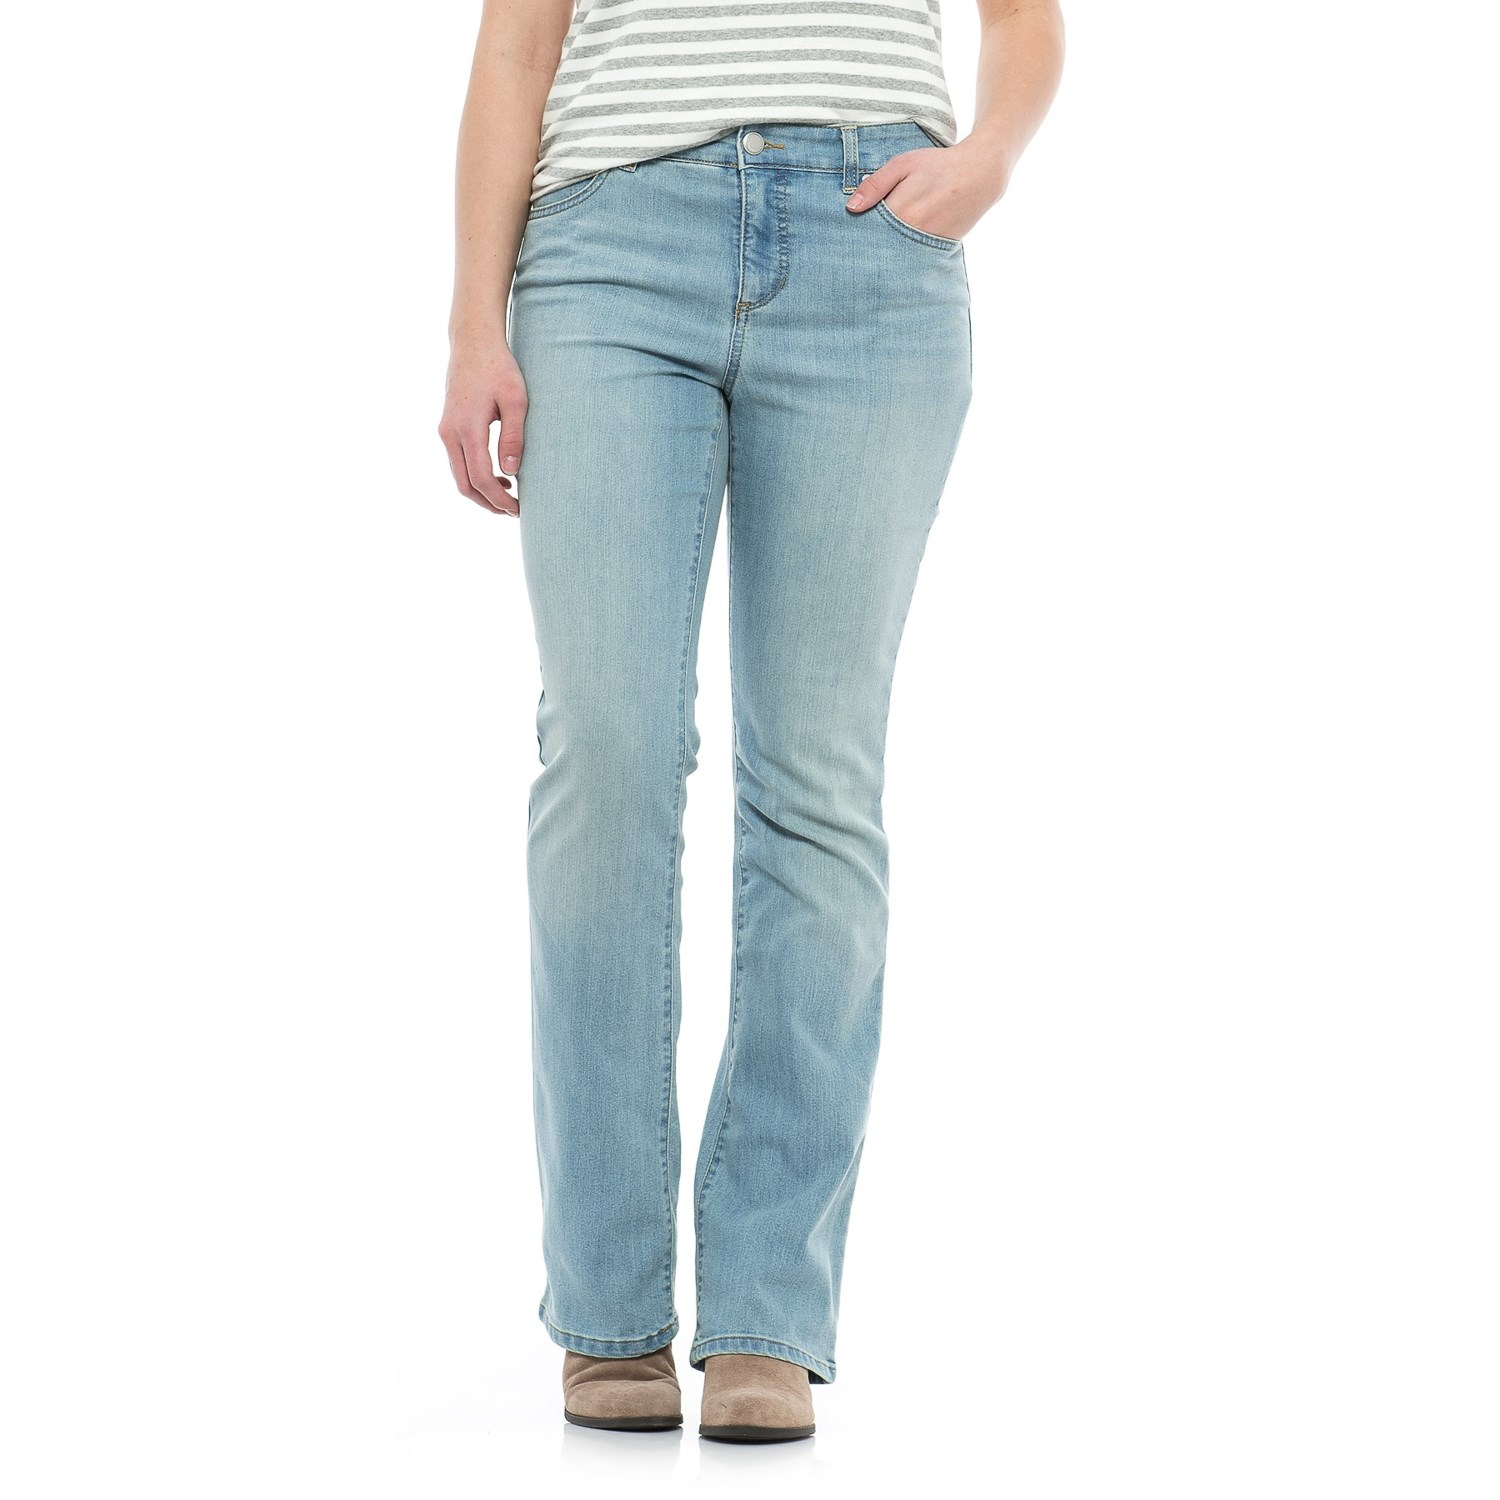 Mandie Perfect Fit Barely Bootcut Jeans (For Women) - Save 55%